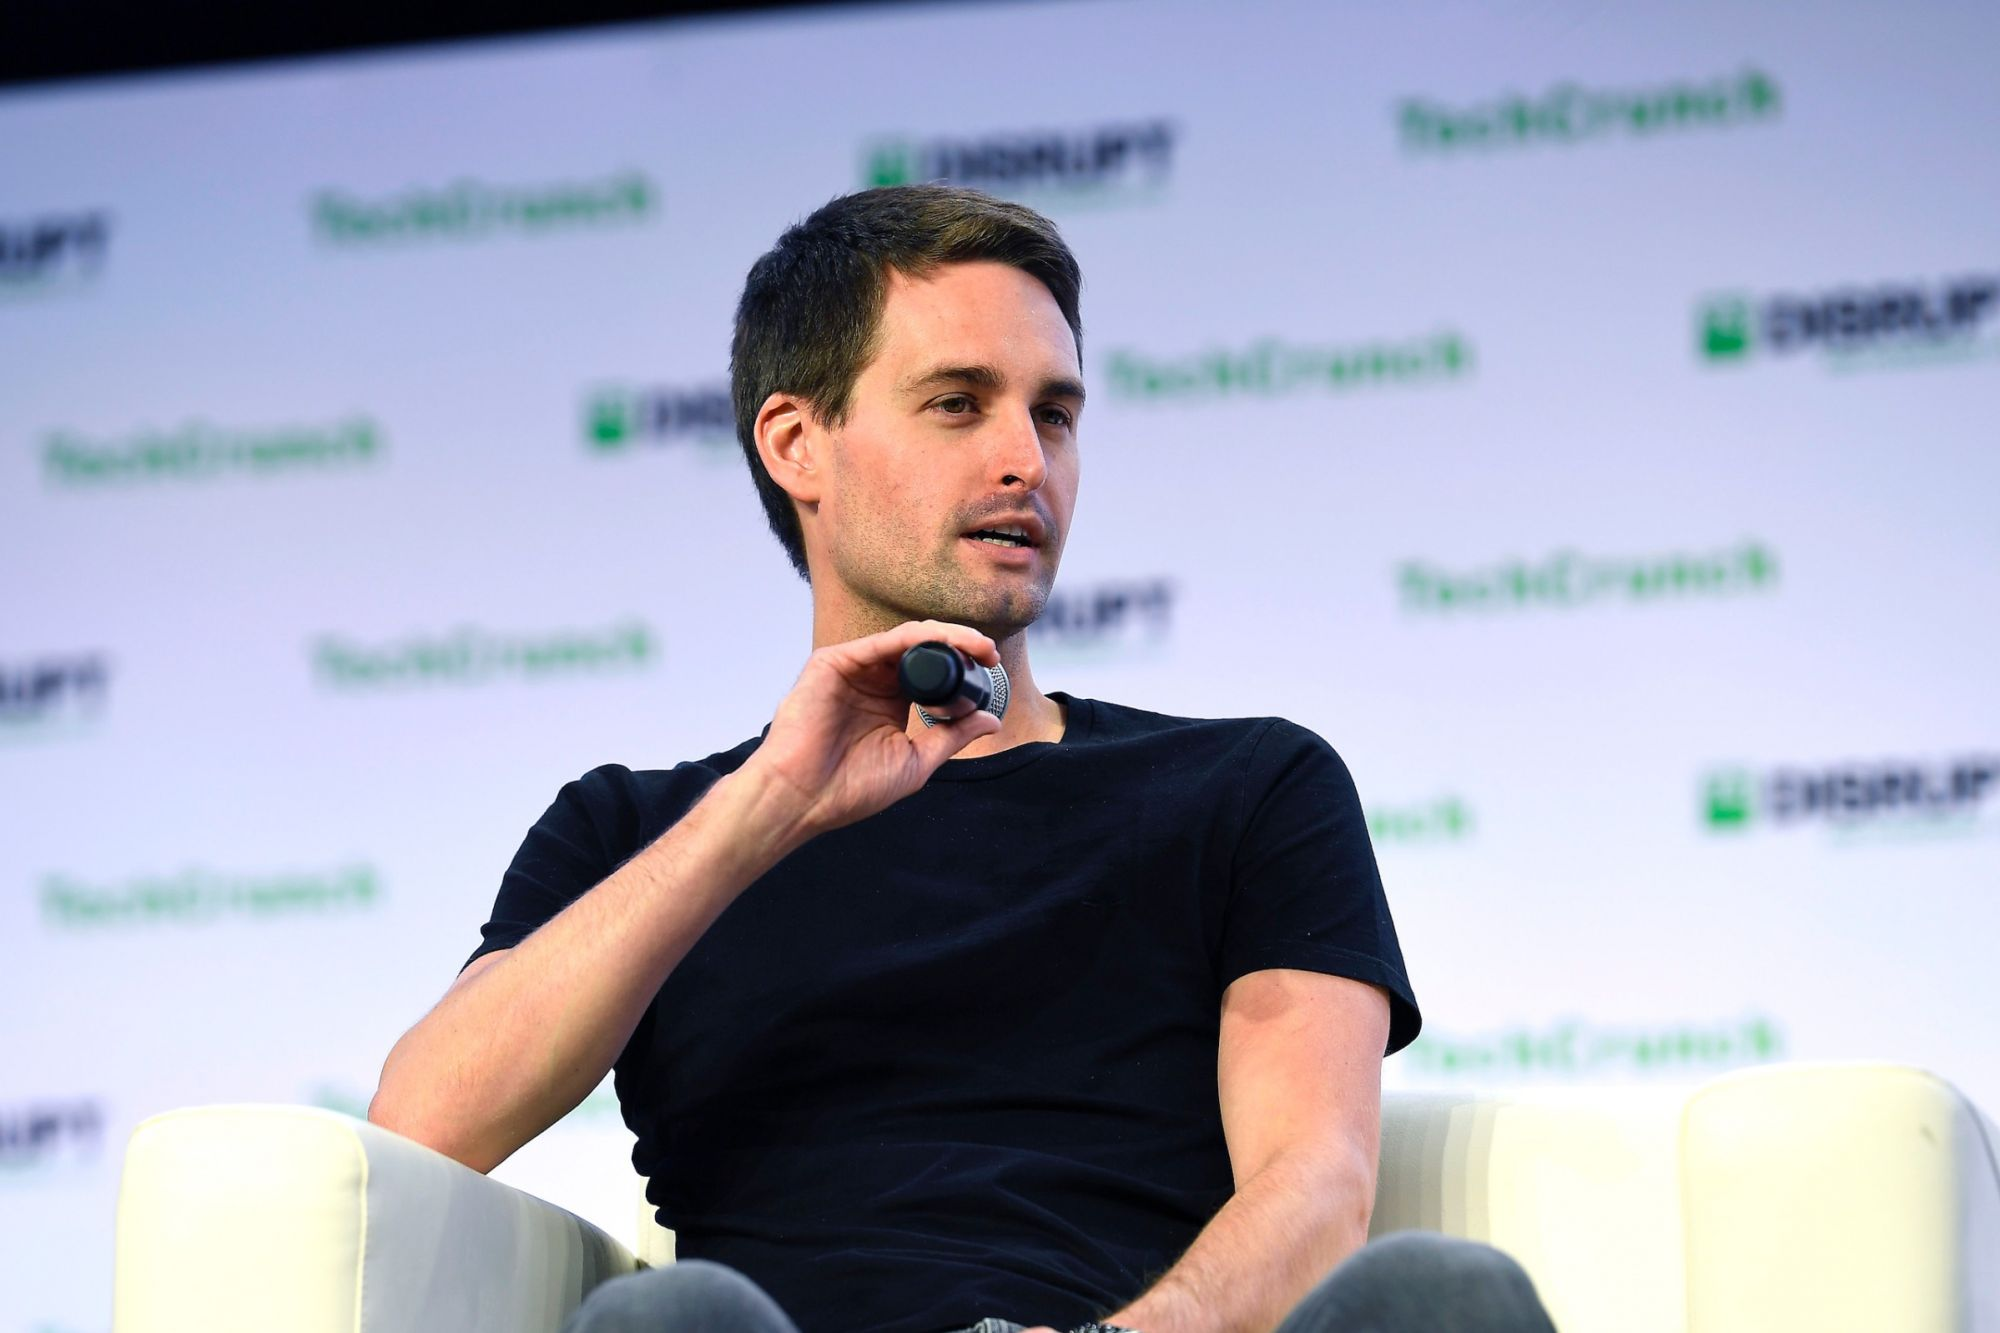 Snap CEO Evan Spiegel Says TikTok Could Be Bigger Than Instagram